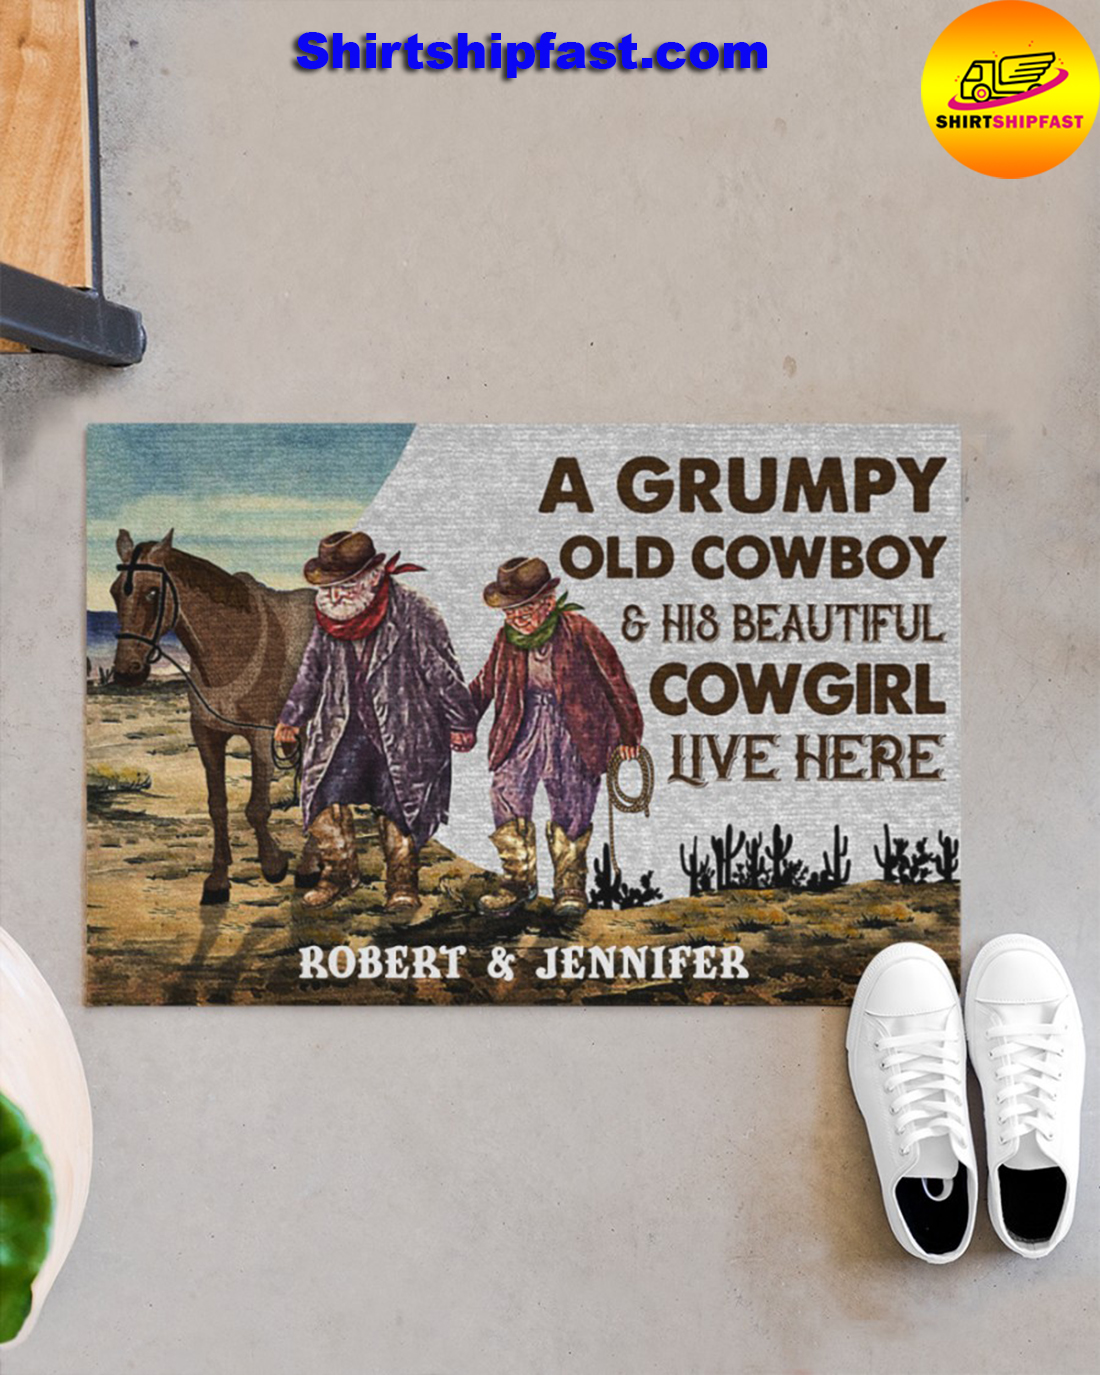 Personalized A grumpy old cowboy and his beautiful cowgirl live here doormat - Picture 1